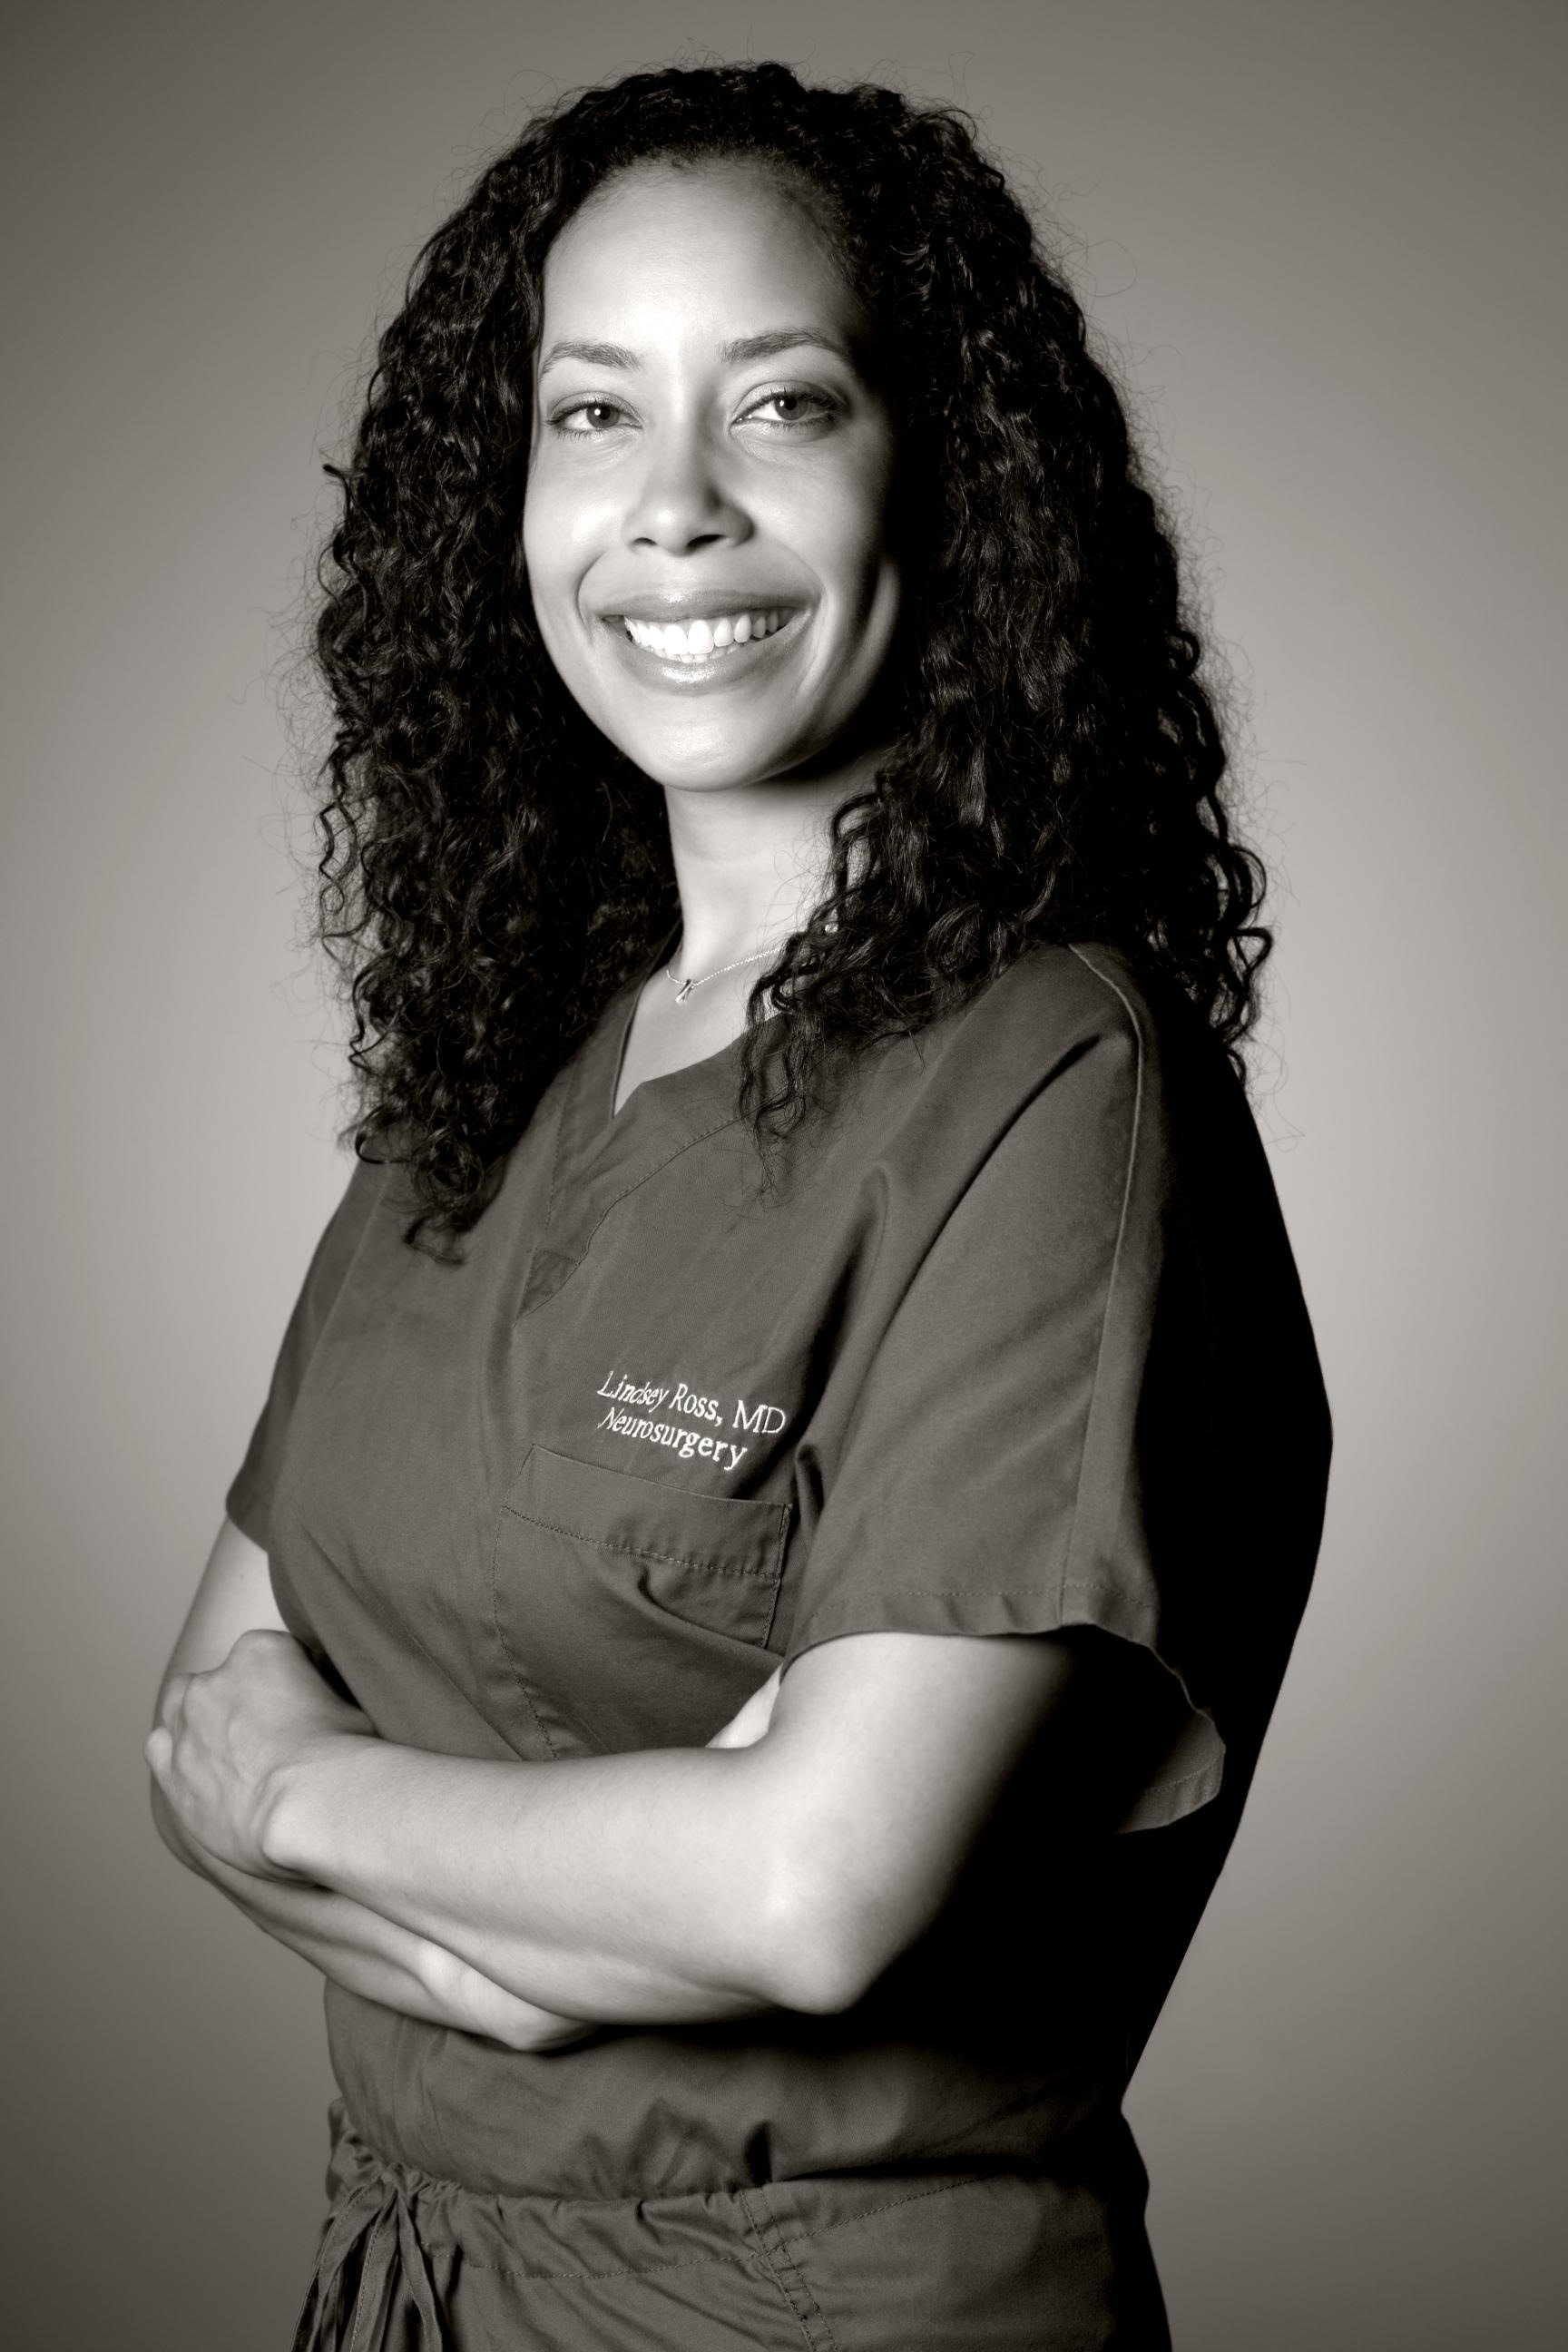 Los Angeles Neurosurgeon Dr  Lindsey Ross Accepted into